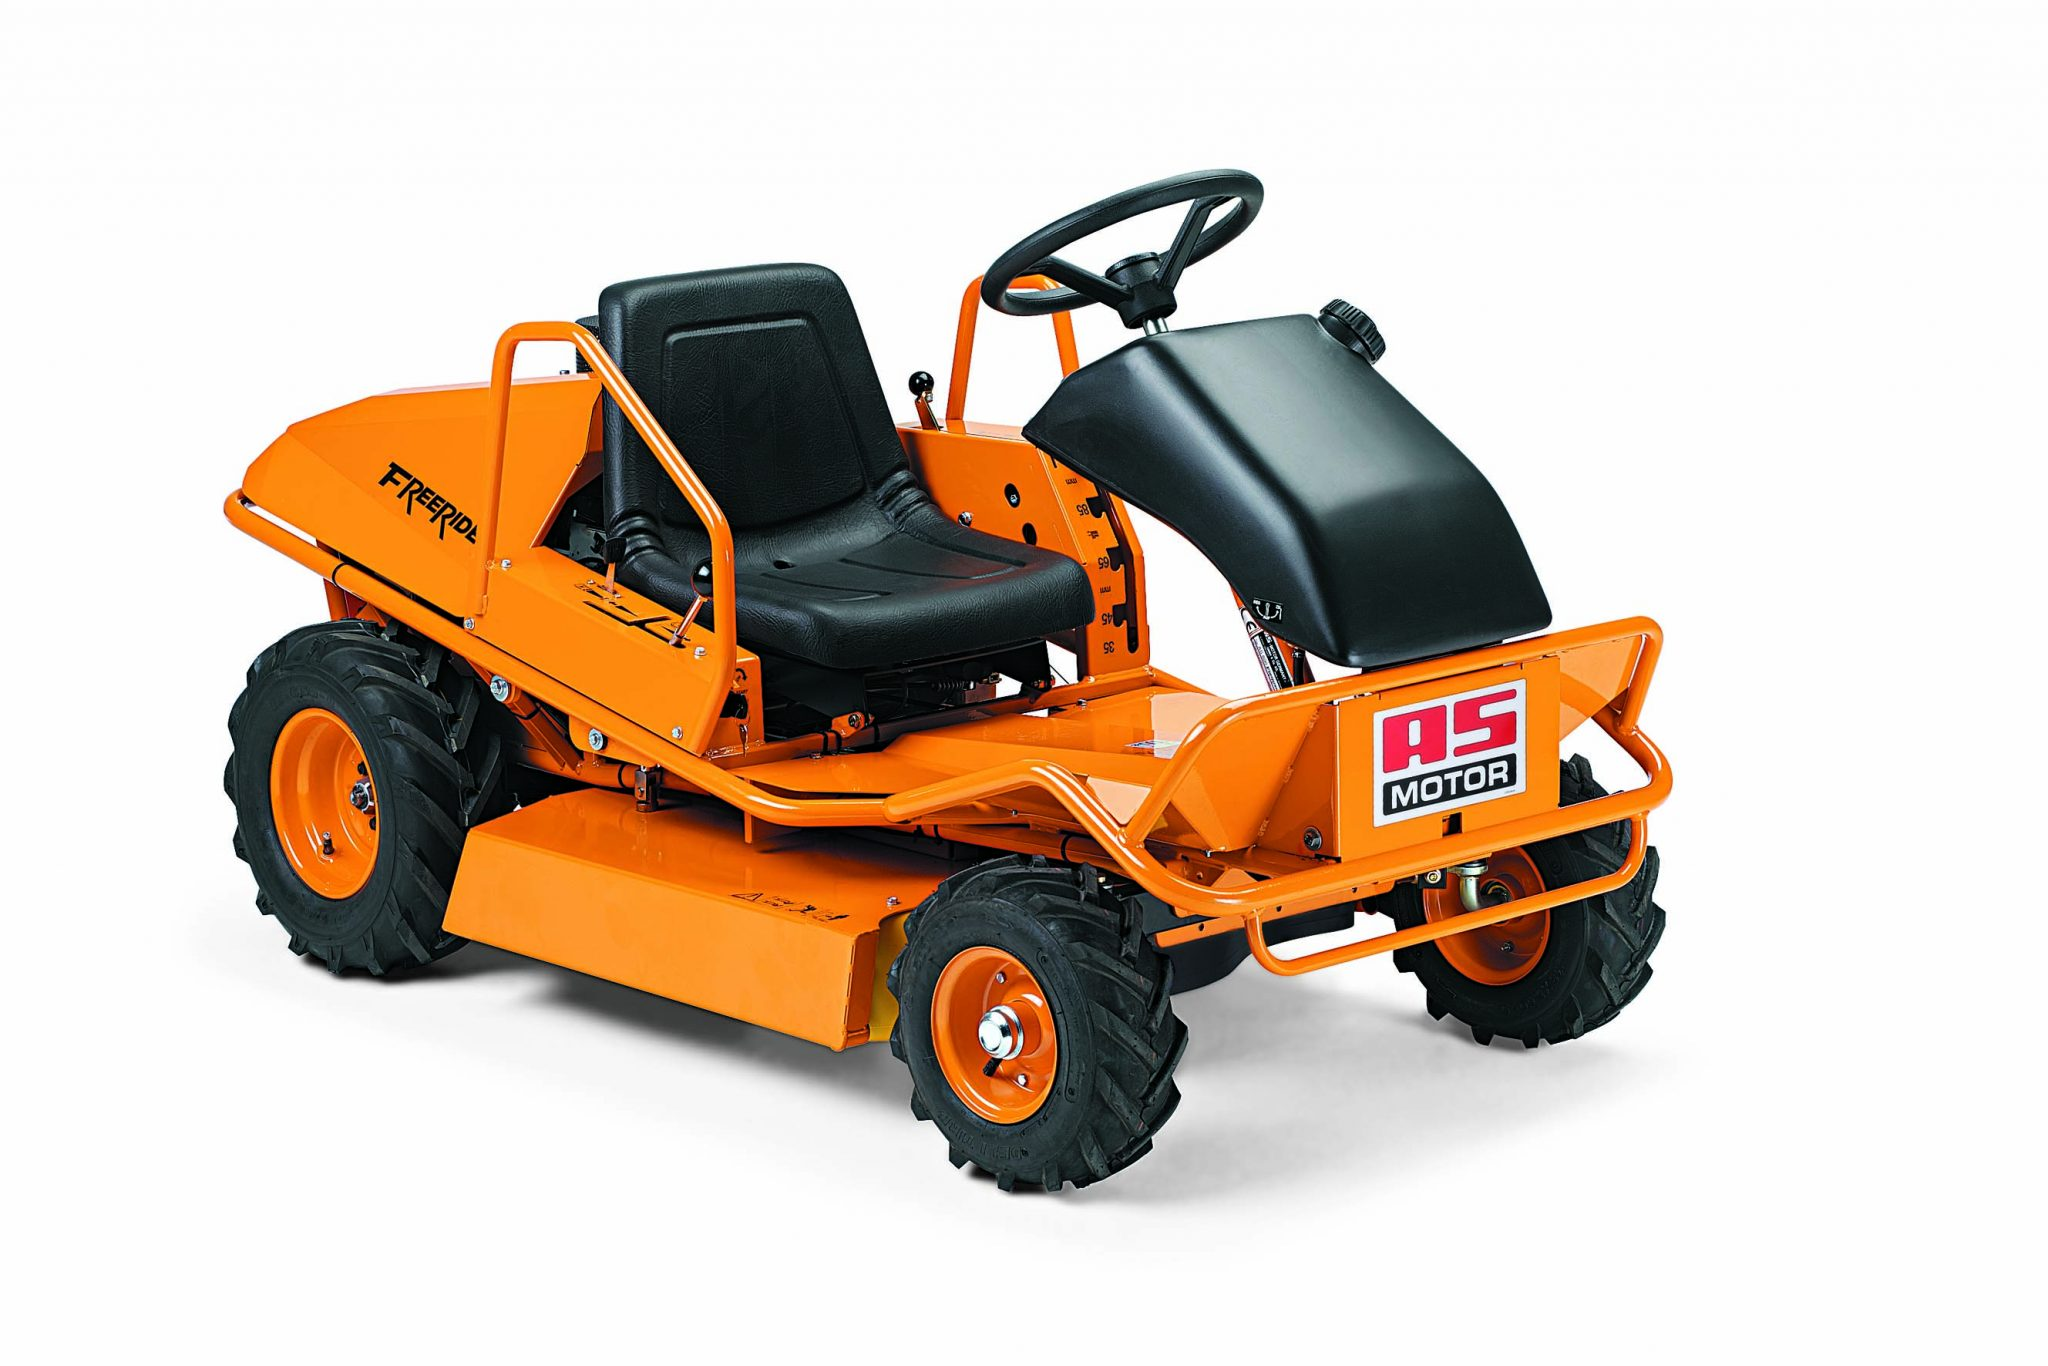 AS Motor 800 FreeRider Ride-on Mower Image